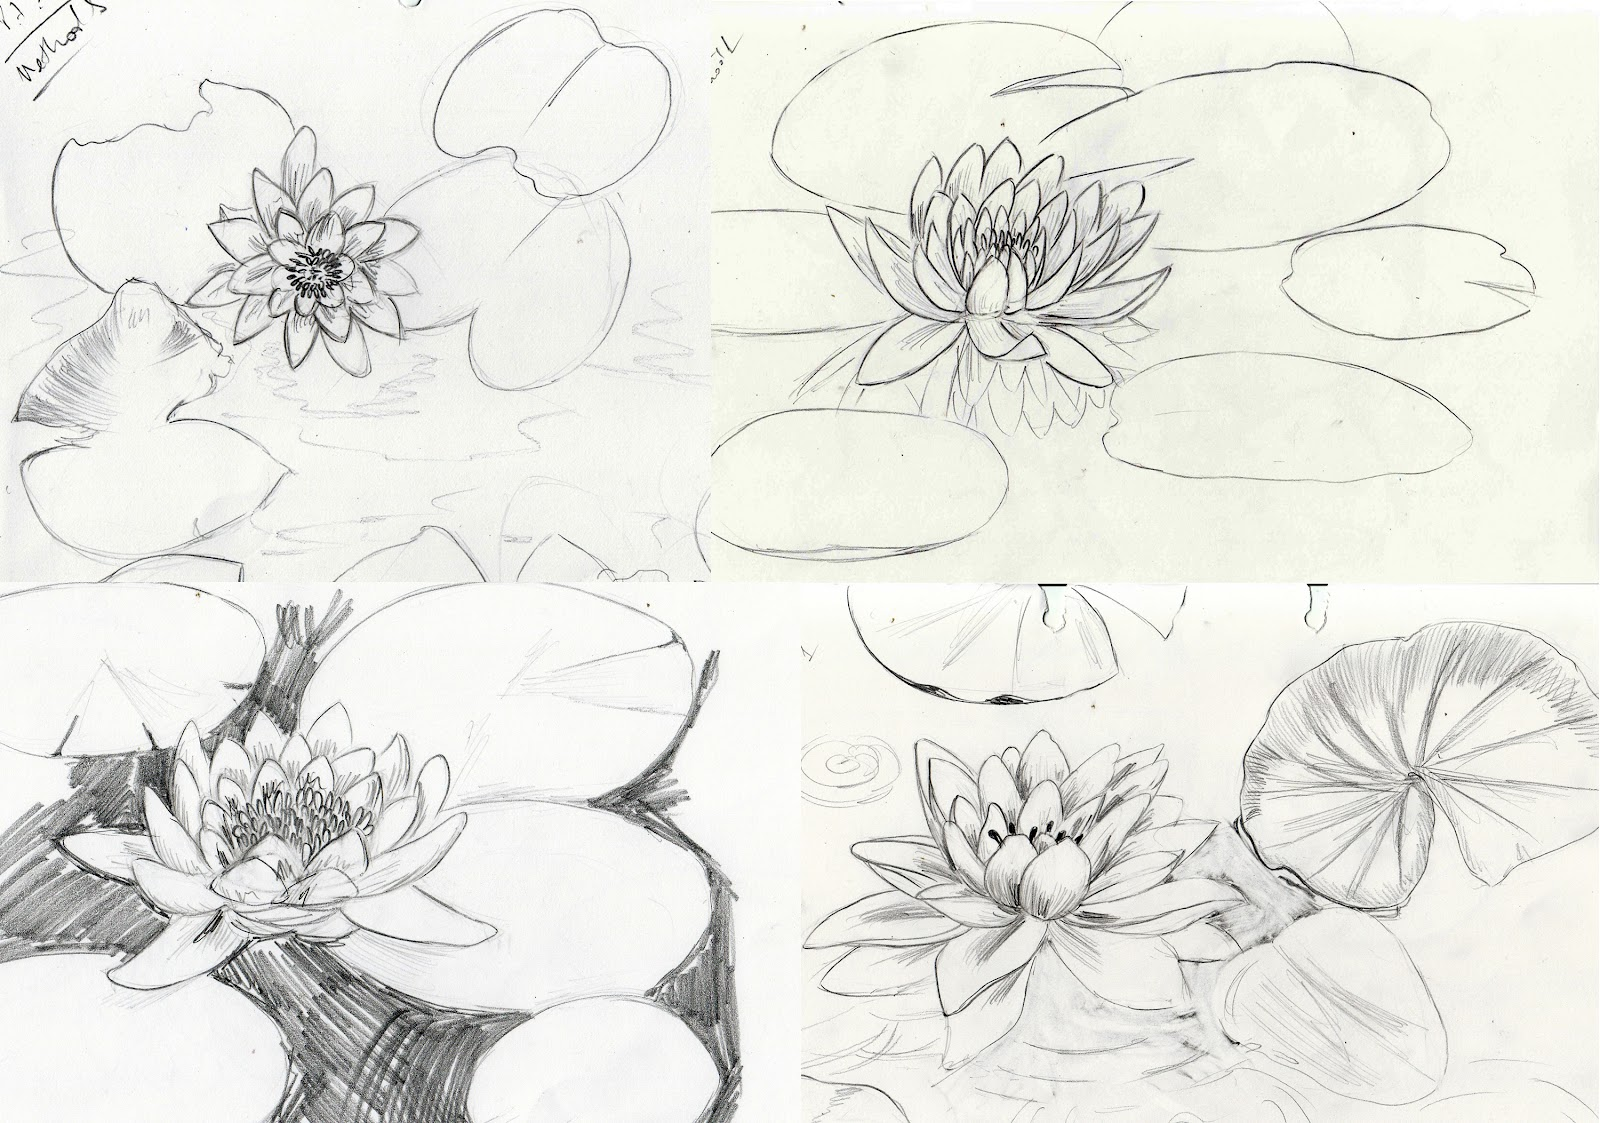 are other four sketches  Drawings Of Water Lilies